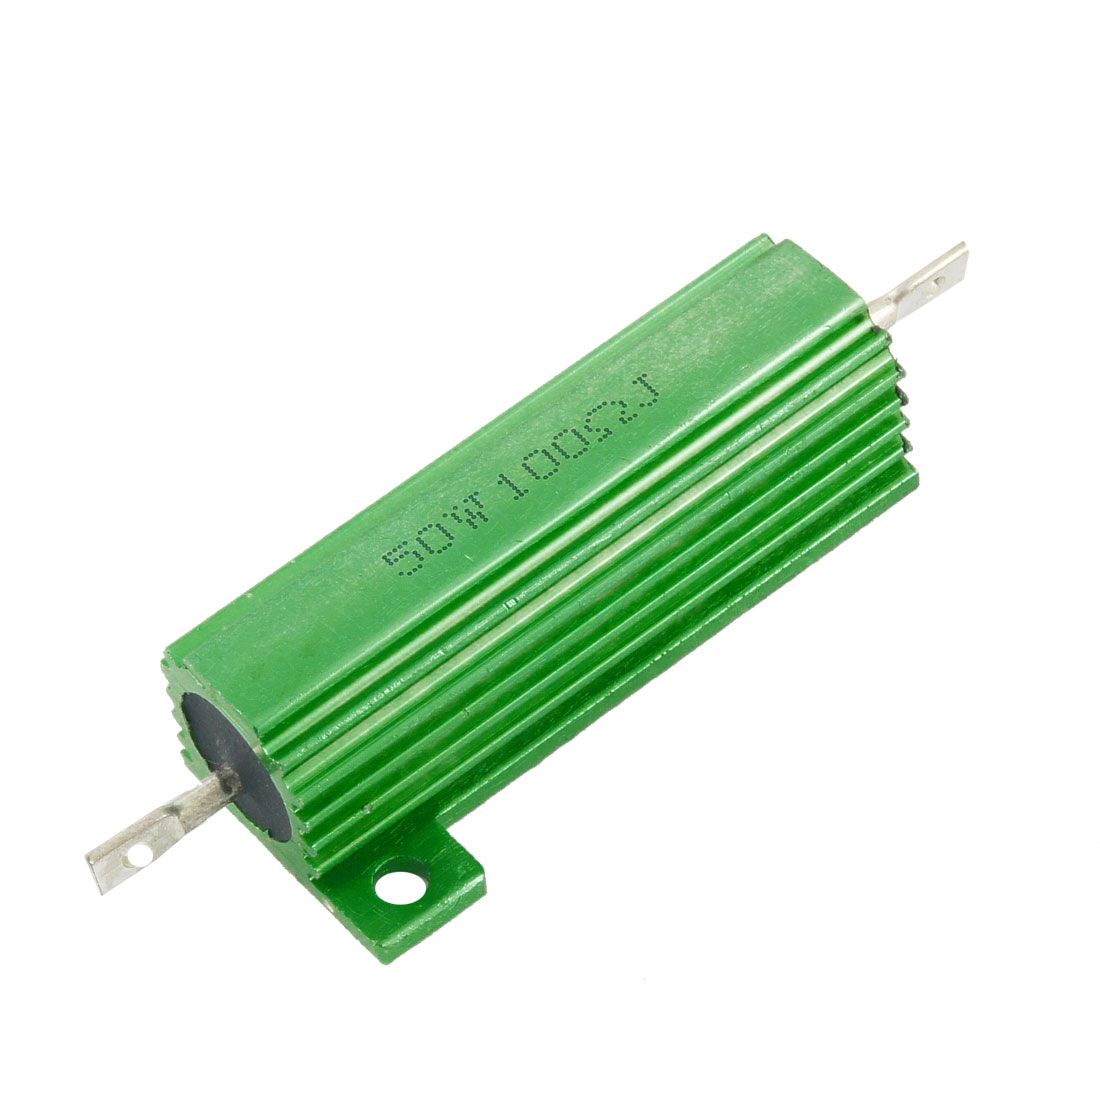 50 Watt 100 Ohm 5% Green Aluminum Shell Wire Wound Resistor